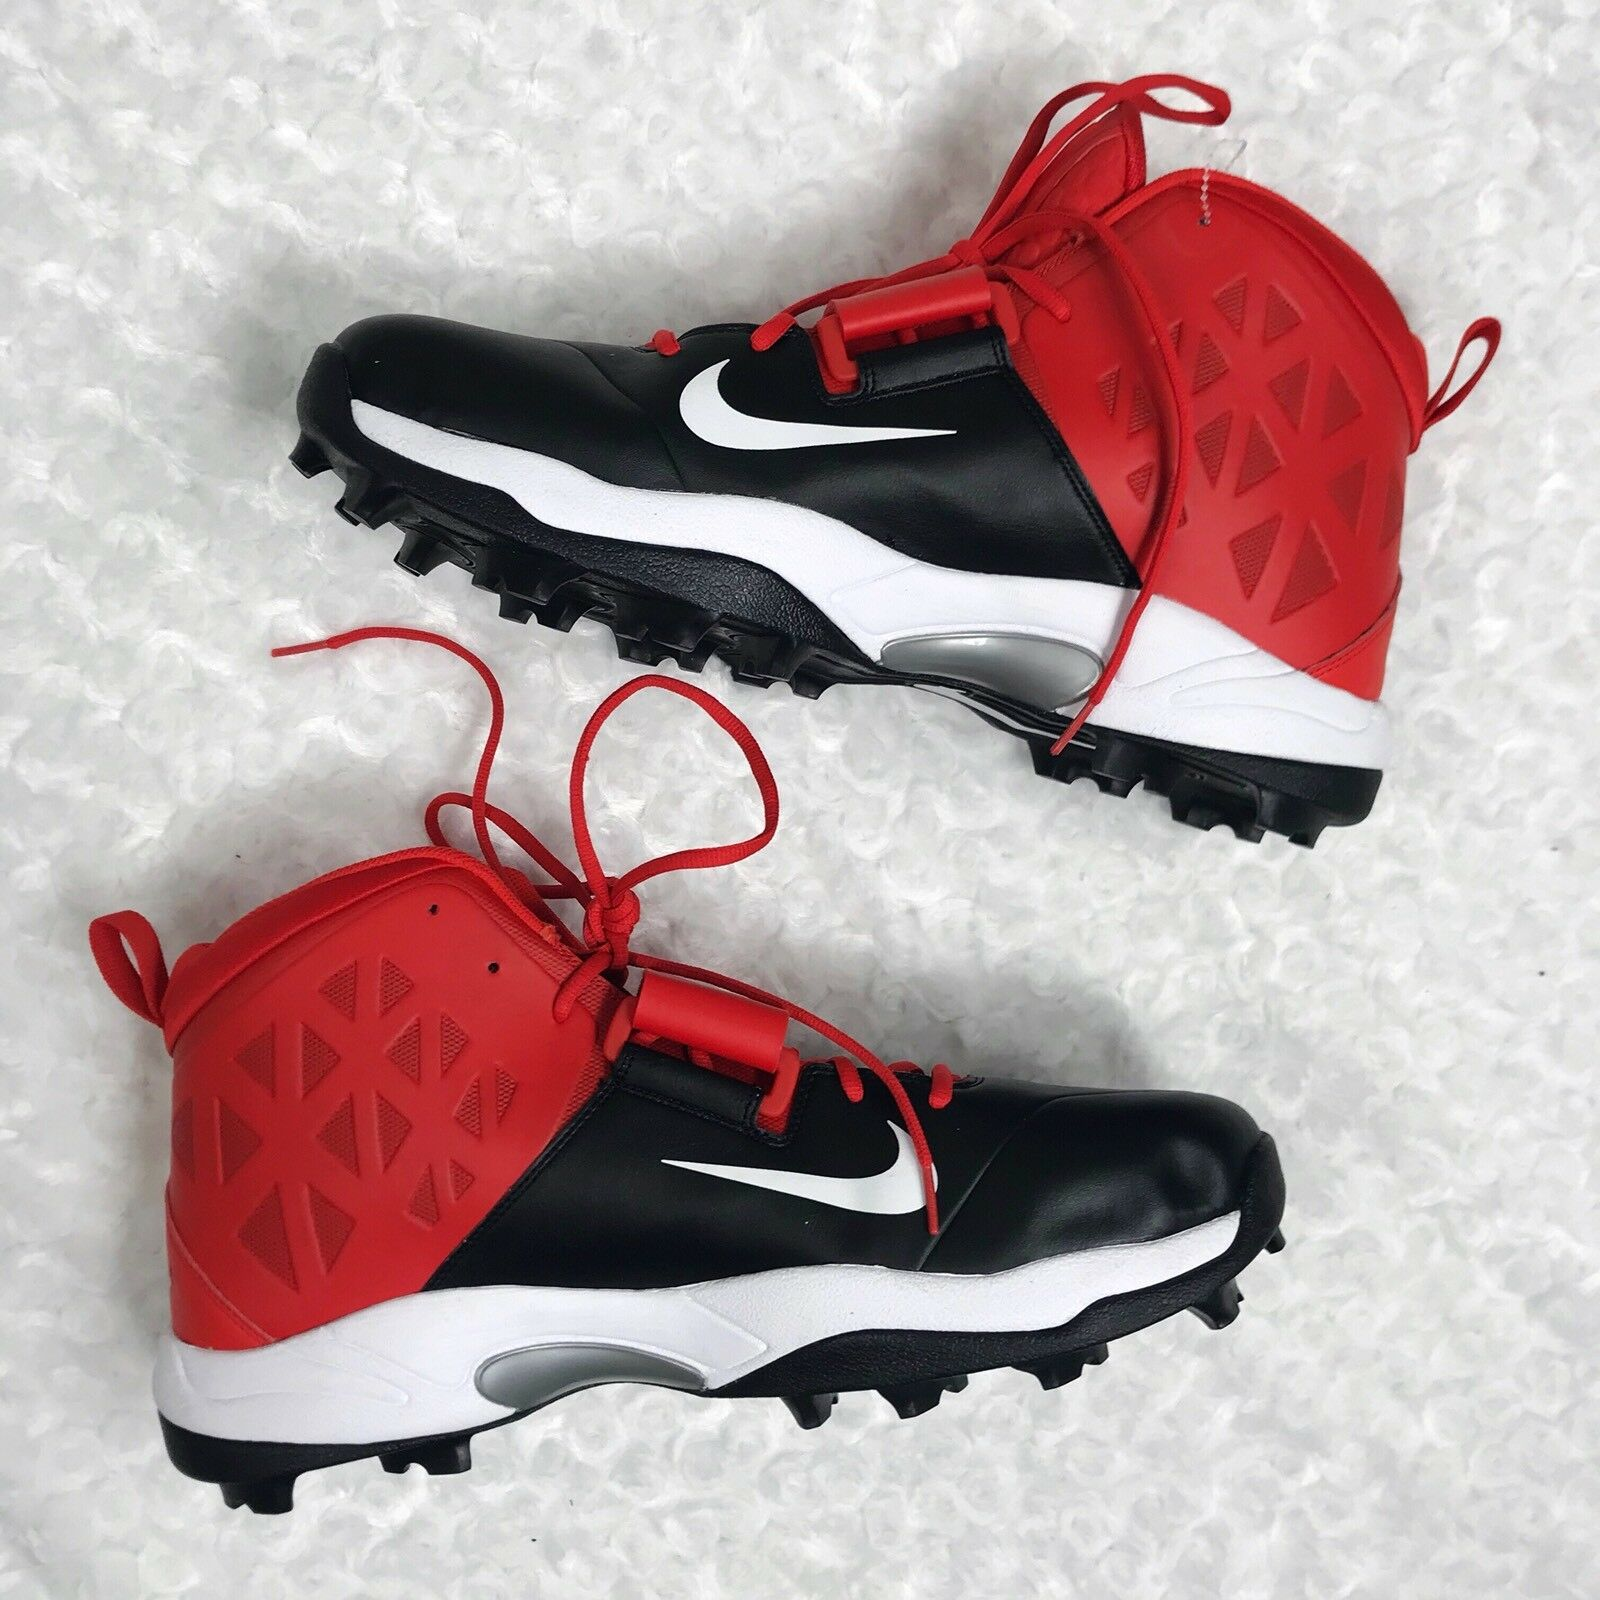 NWOB Nike 18 Mens Black & Red Zoom Code Elite Stove Shark Football Cleats Shoes Great discount